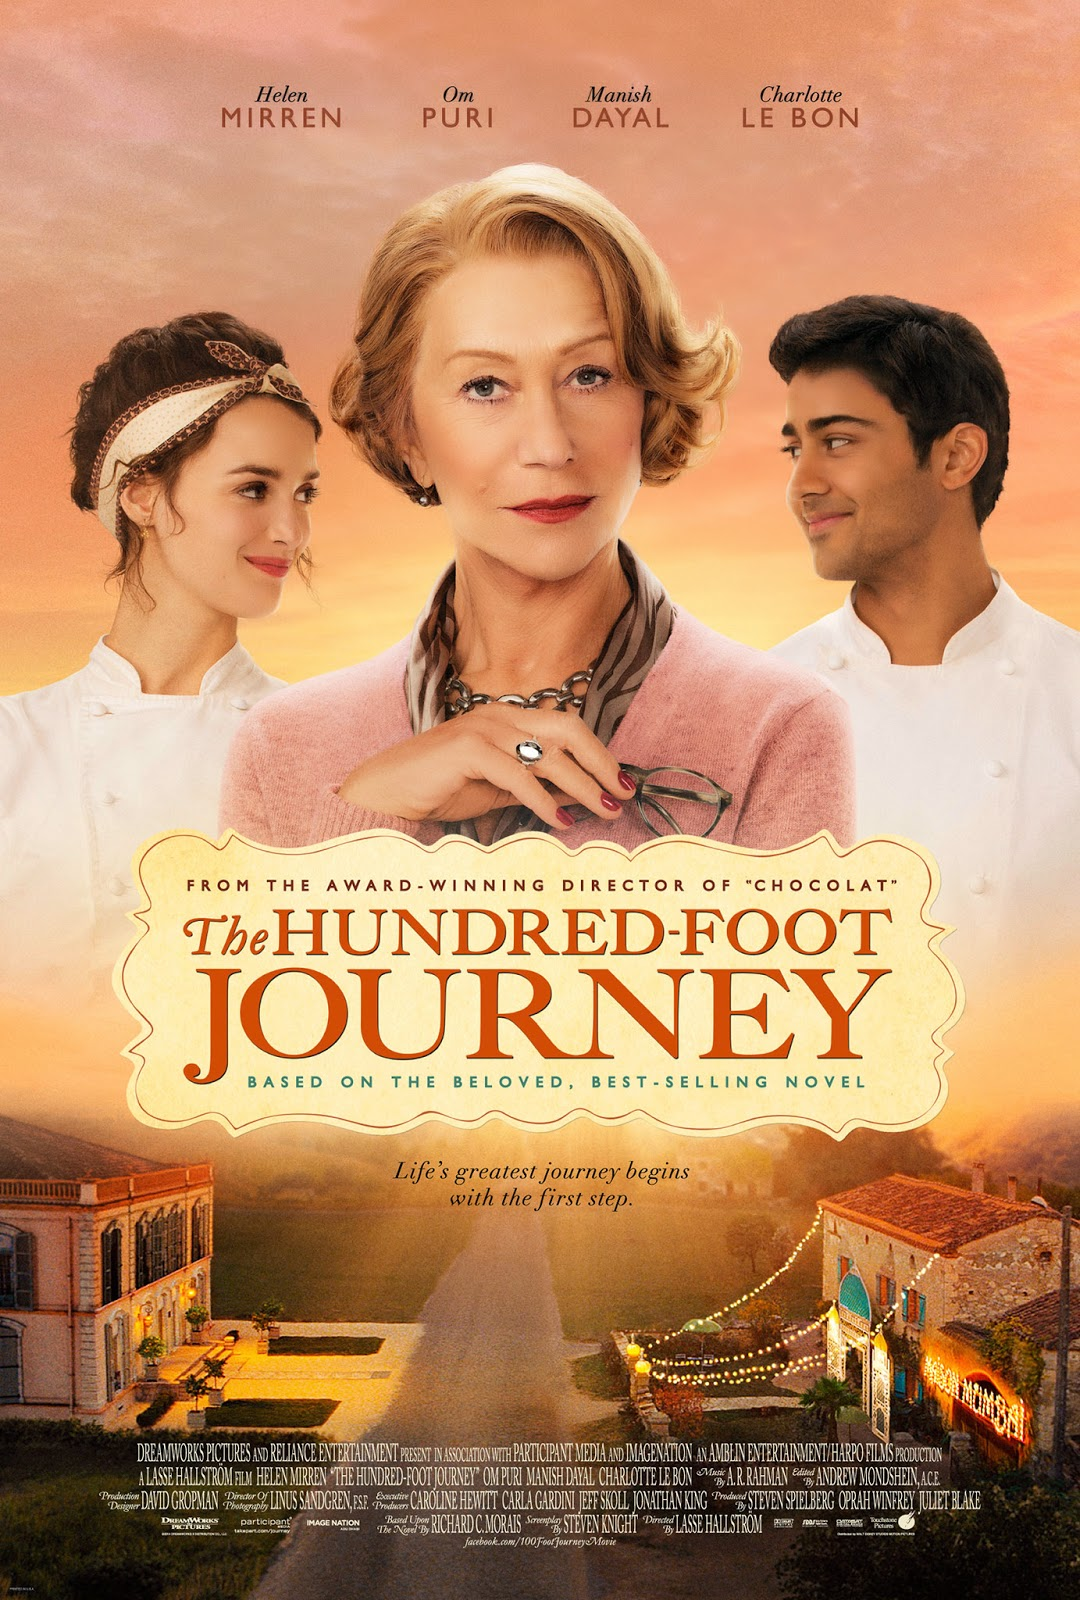 #100FootJourney